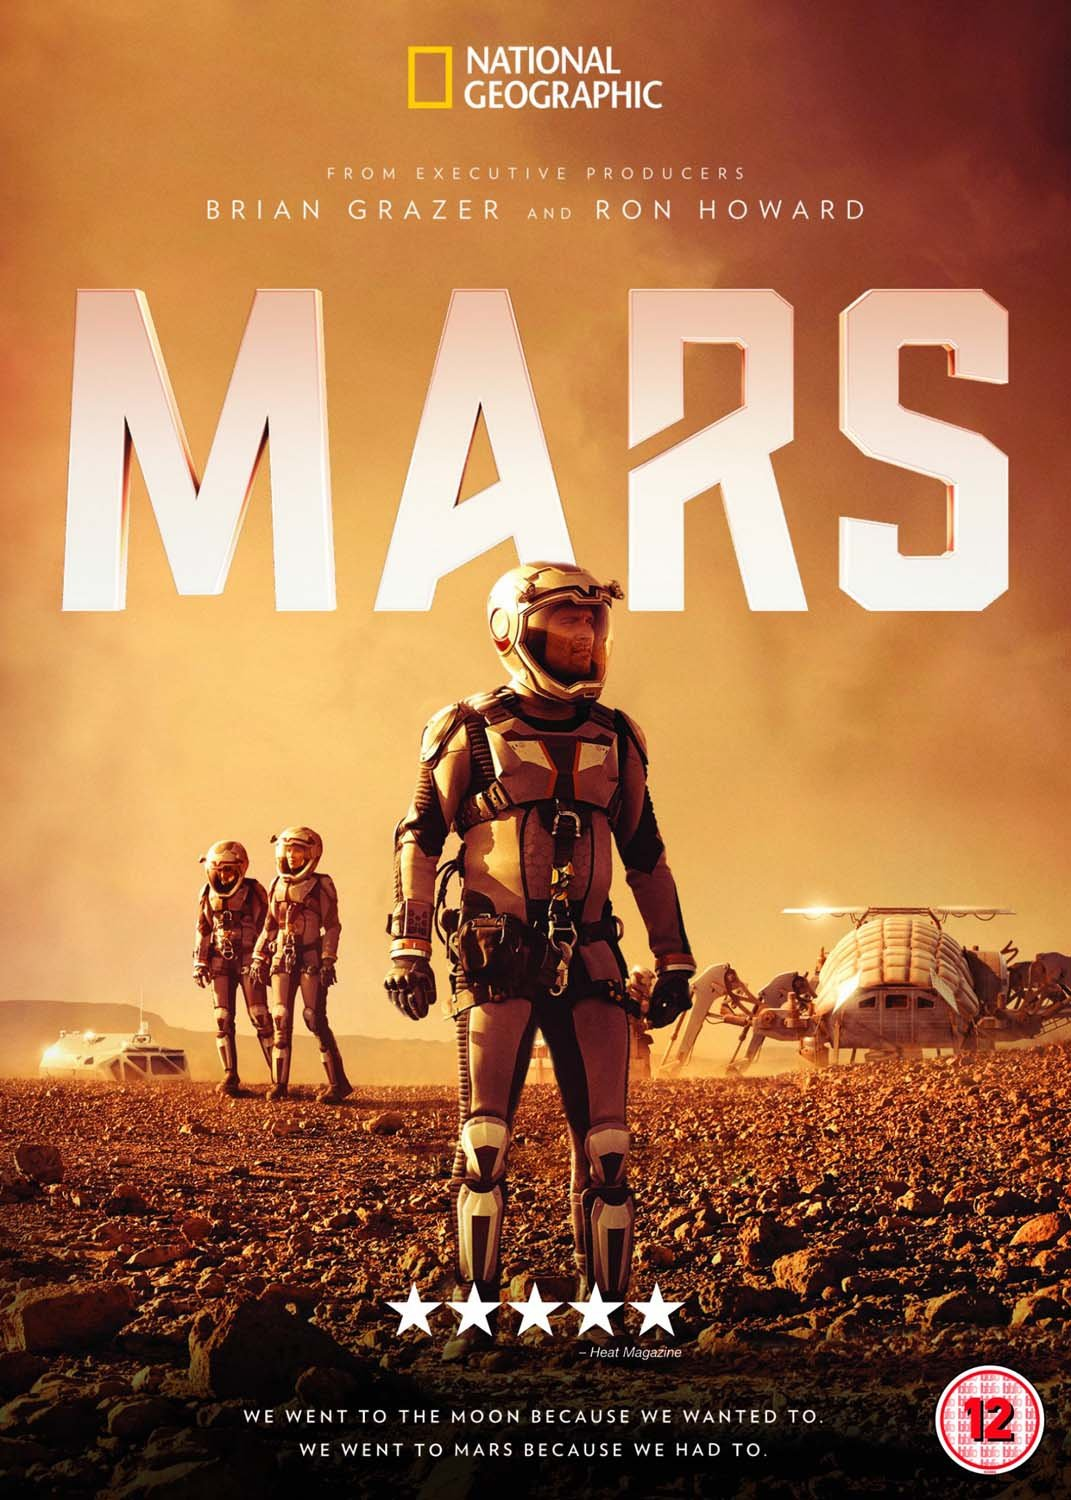 Mars S02E02 iNTERNAL 720p HDTV x264 TURBO rartv Torrent İndir